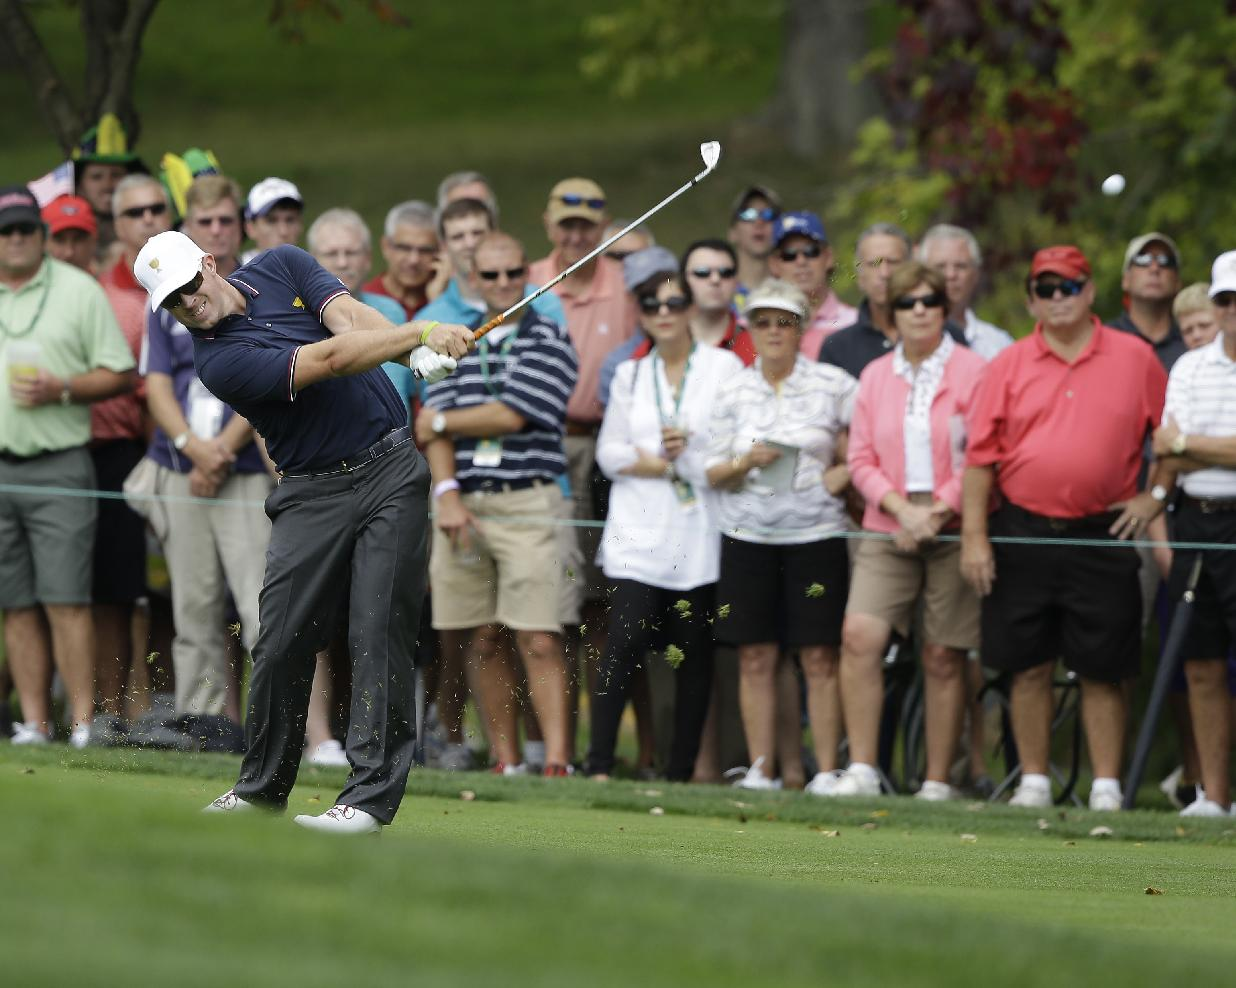 United States team player Hunter Mahan hits from the first fairway during a four-ball match against the International team at the Presidents Cup golf tournament at Muirfield Village Golf Club Thursday, Oct. 3, 2013, in Dublin, Ohio